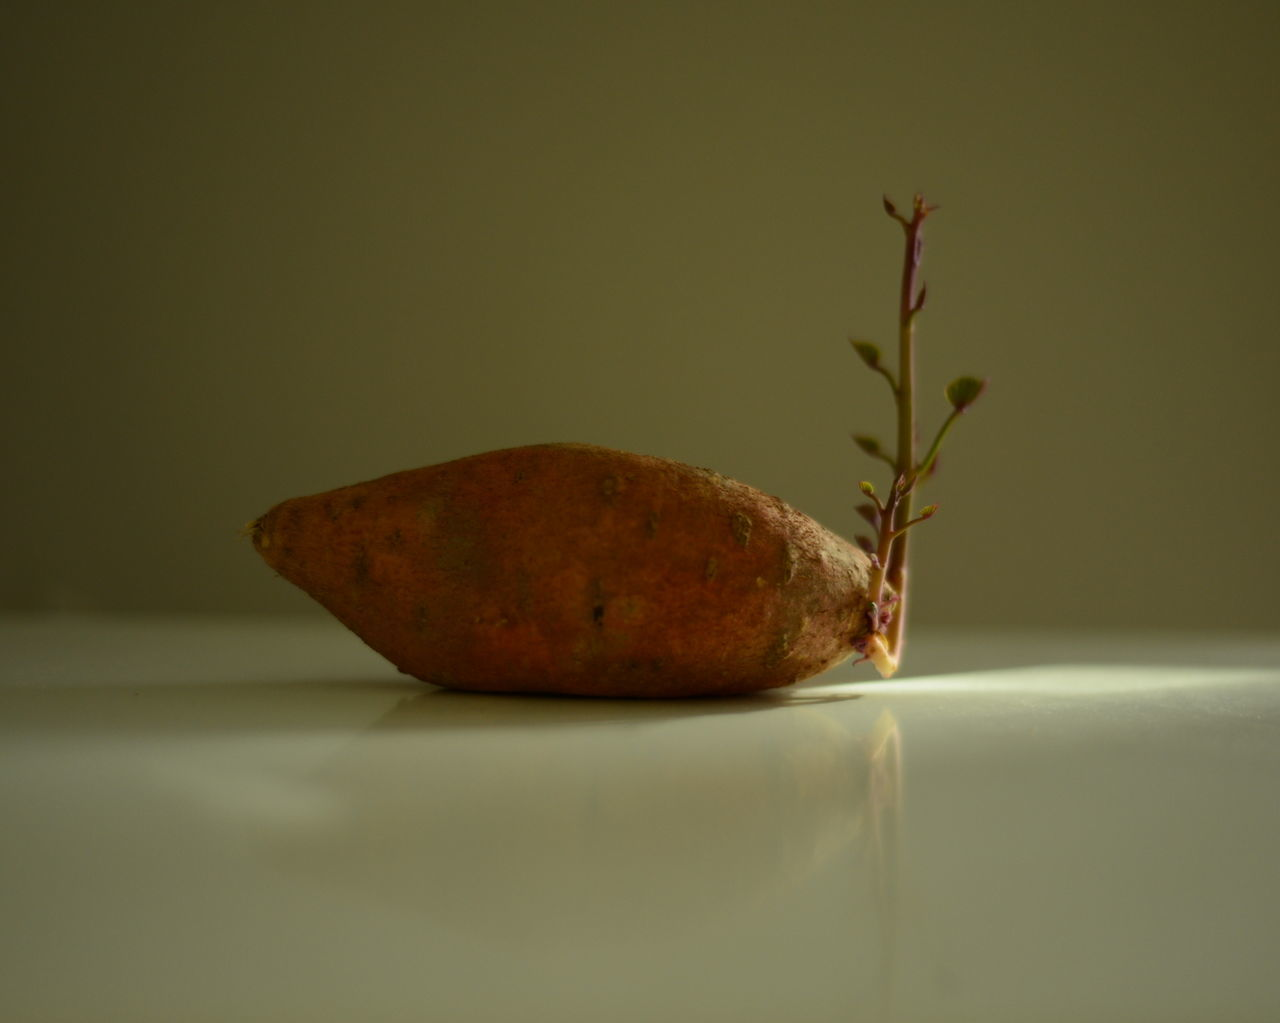 Brown Creativity Dried Plant Fragility Freshness Indoors  No People Plant Single Object Still Life Studio Shot Sweet Potatoes Table